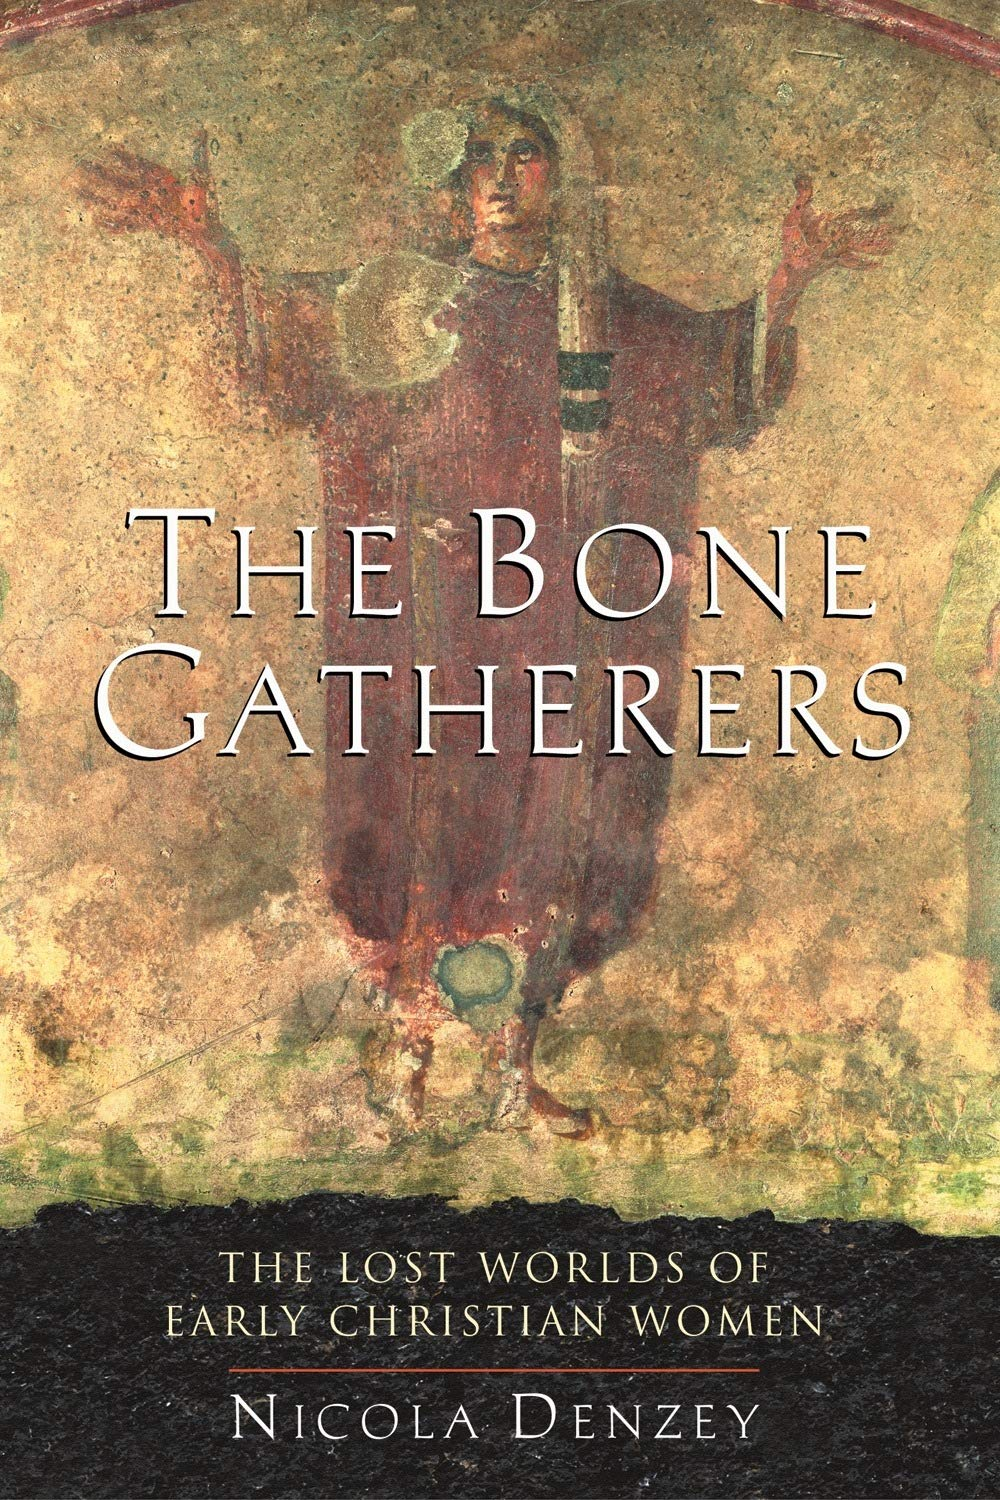 The bone gatherers : the lost worlds of early Christian women /                 Nicola Denzey.